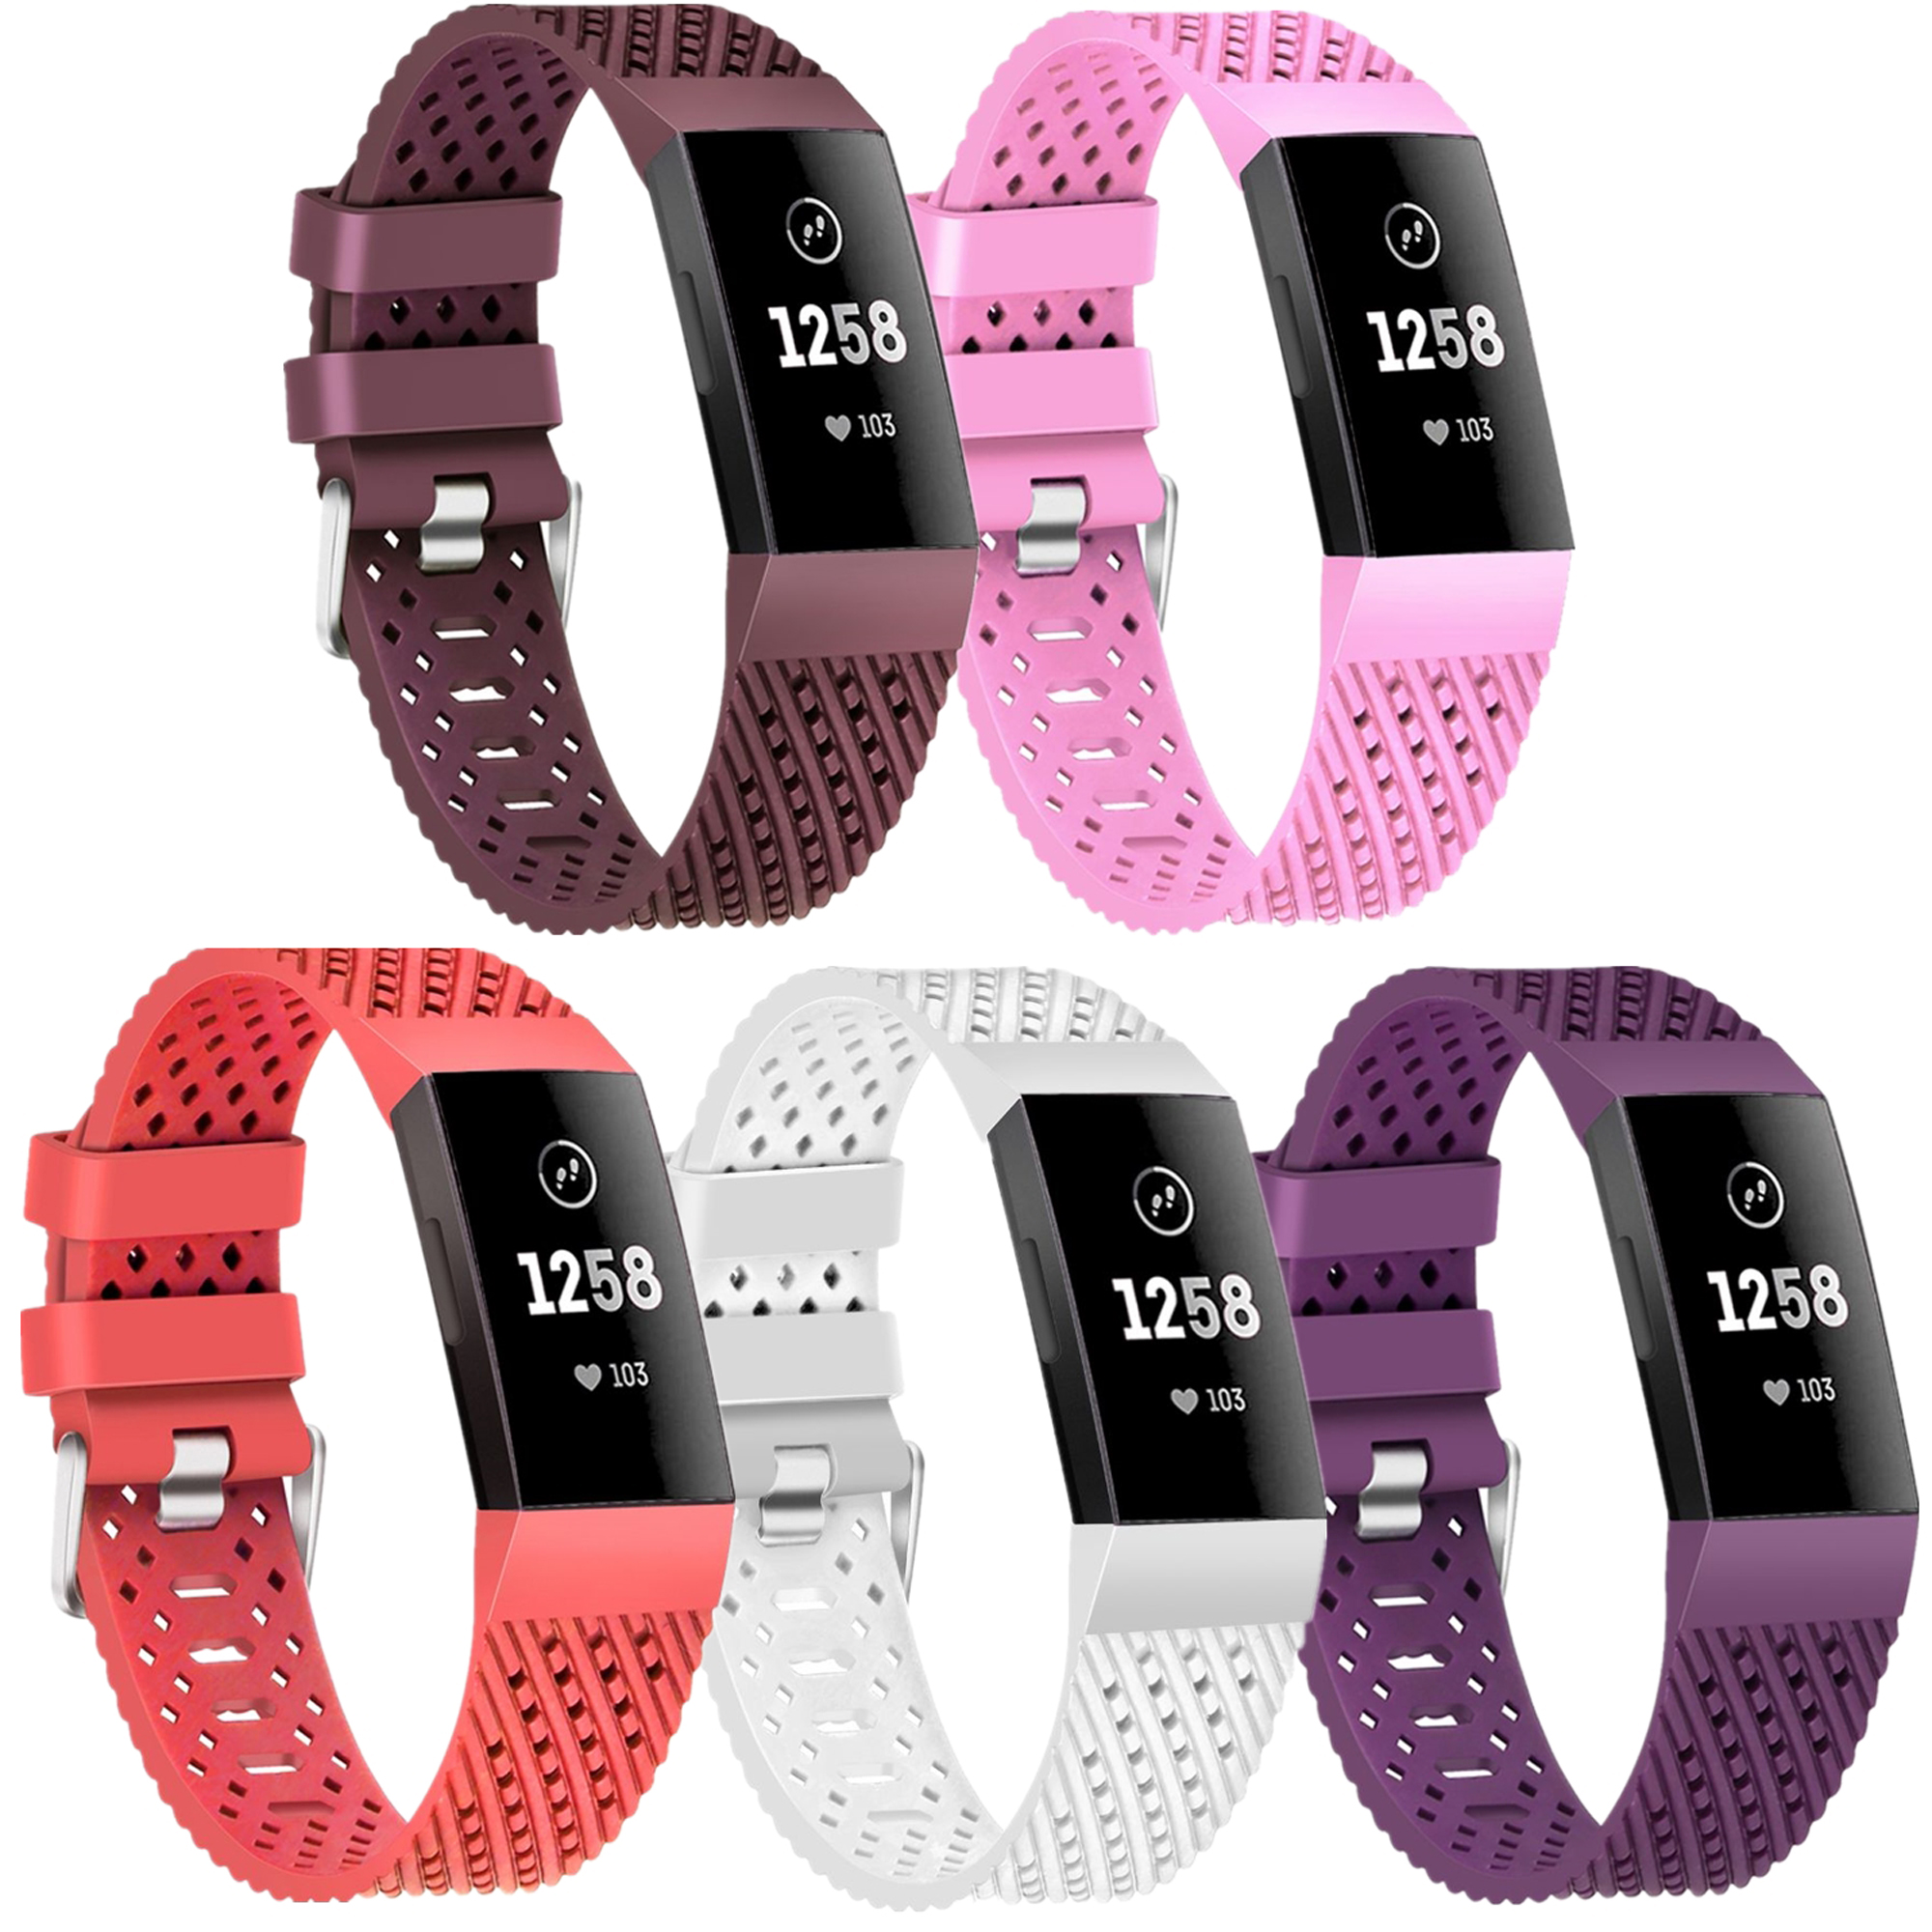 Moretek 5PCS Charge 3 Replacement Wrist Band Multi-Color Women Men Bands Accessories for Fitbit Charge 3 Small